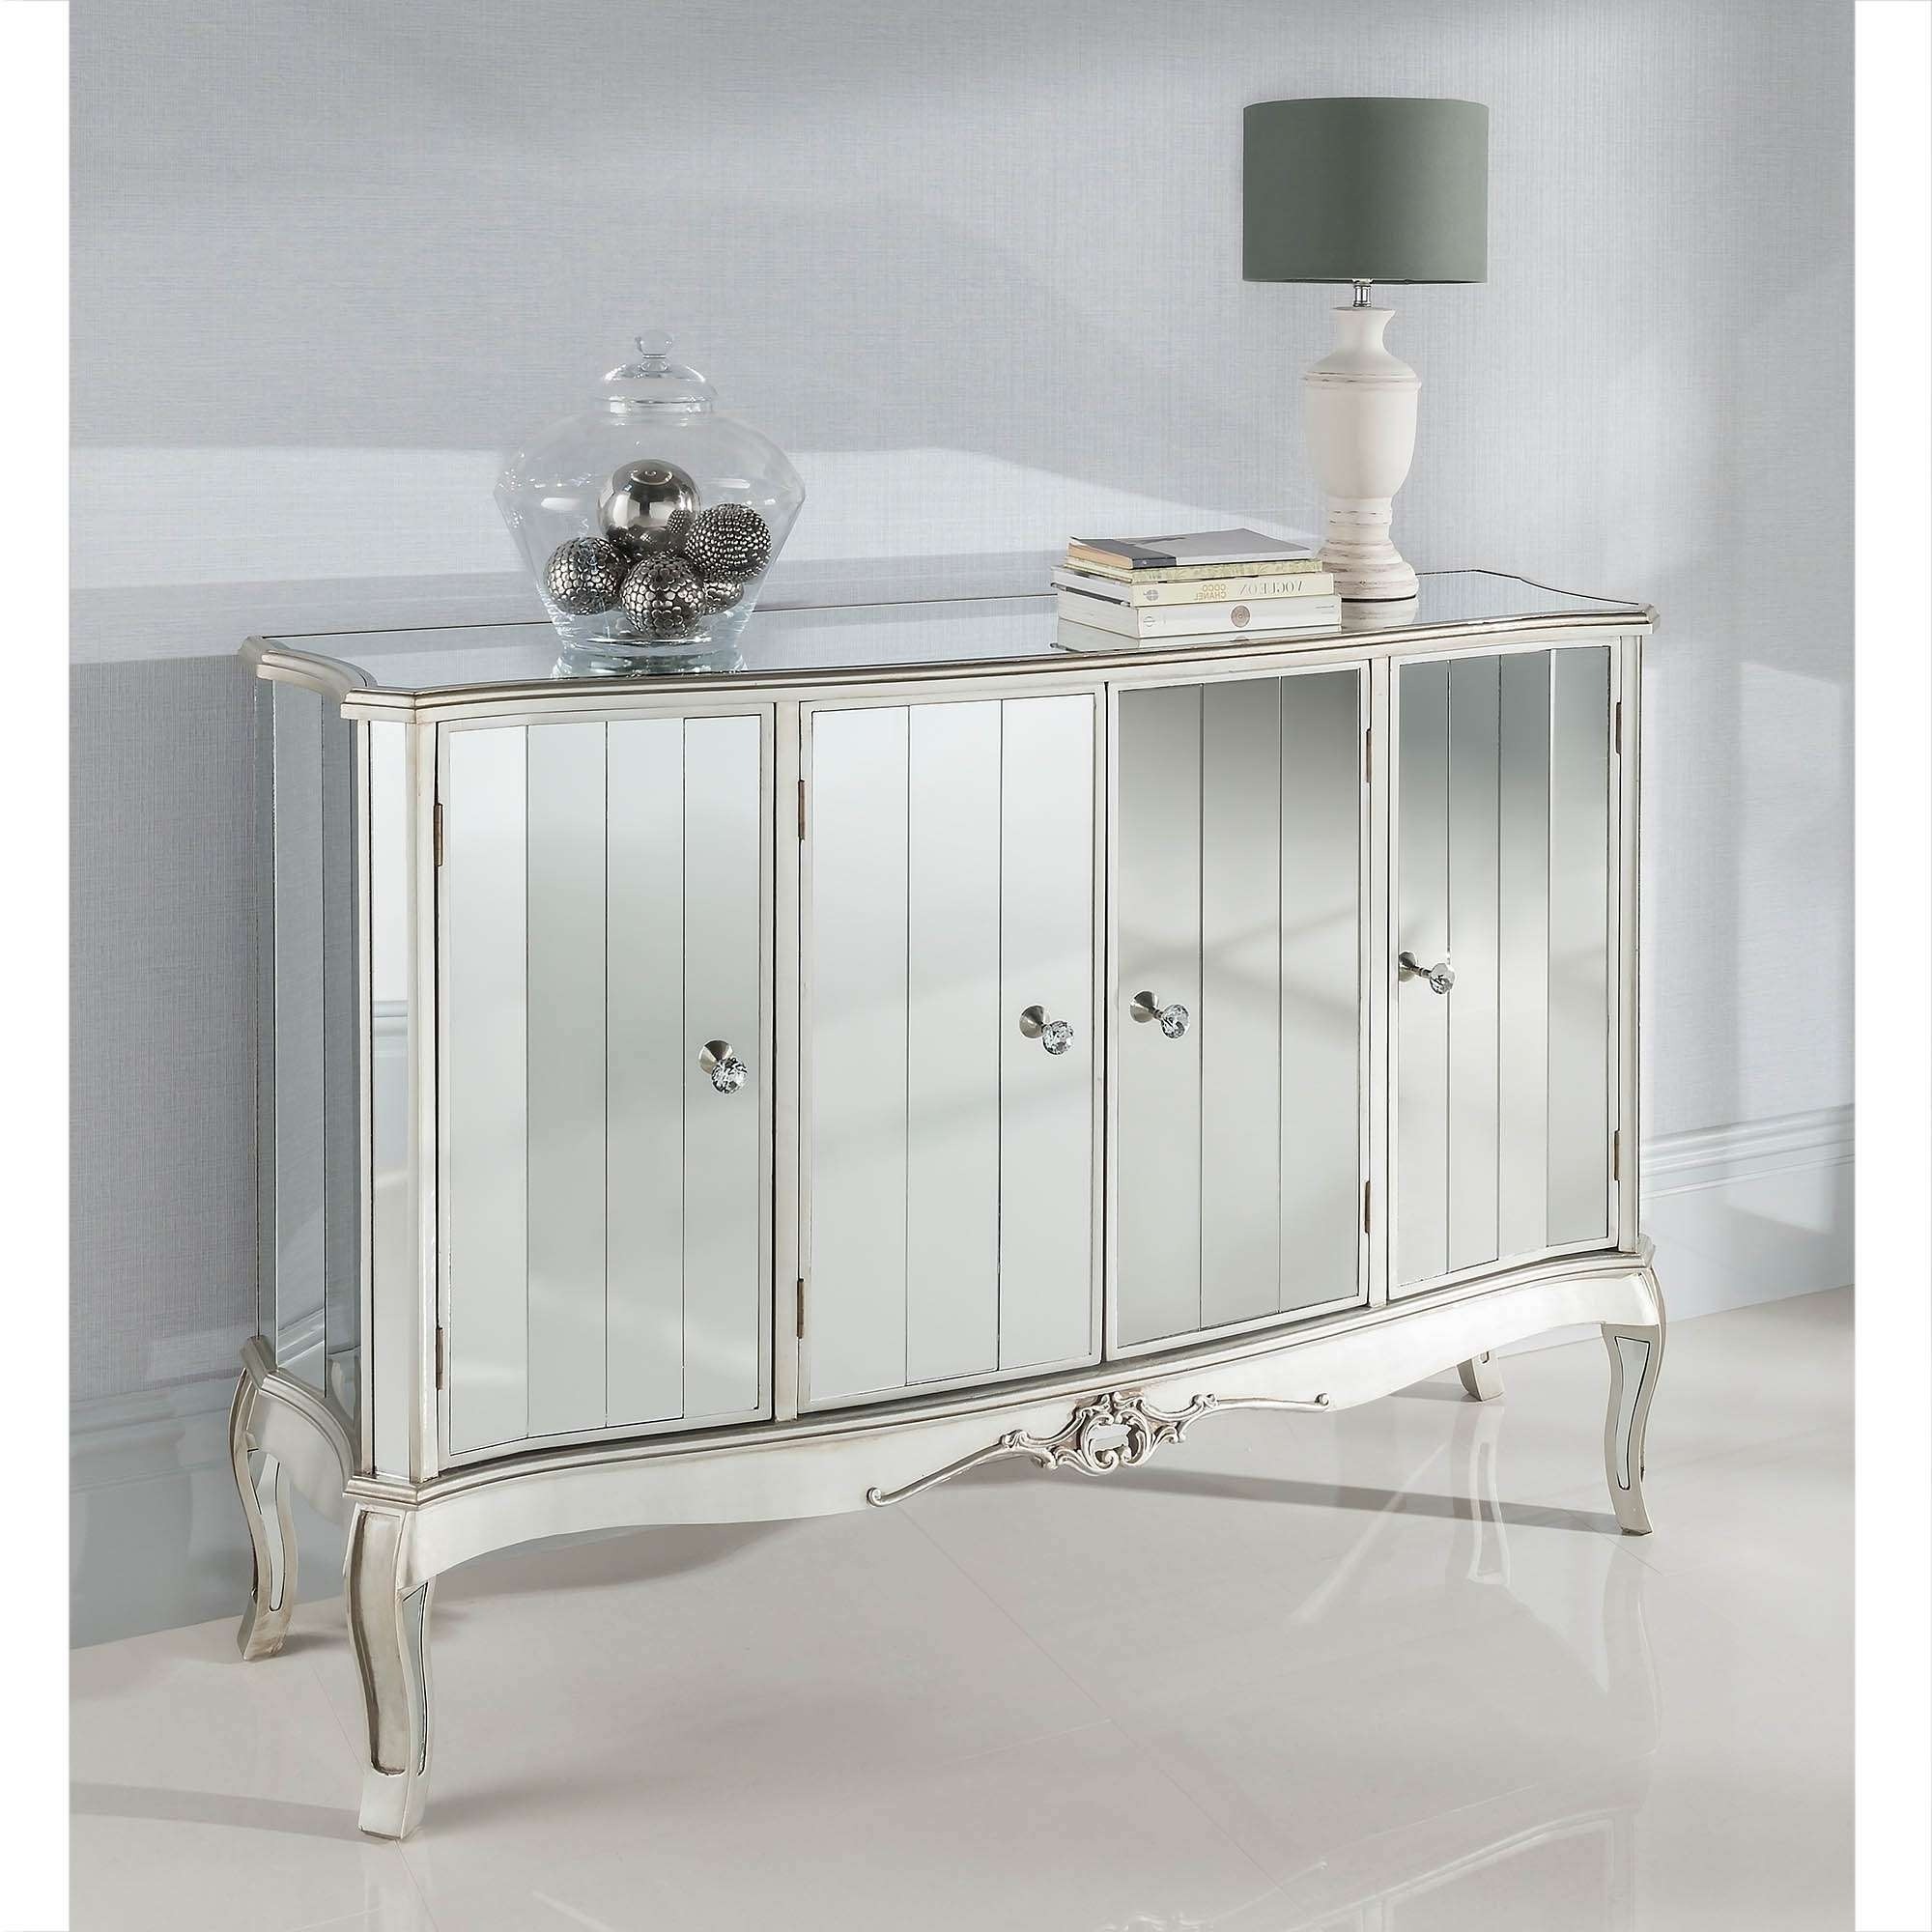 Argente Mirrored Four Door Sideboard | Mirrored Furniture With Black And Silver Sideboards (View 13 of 20)